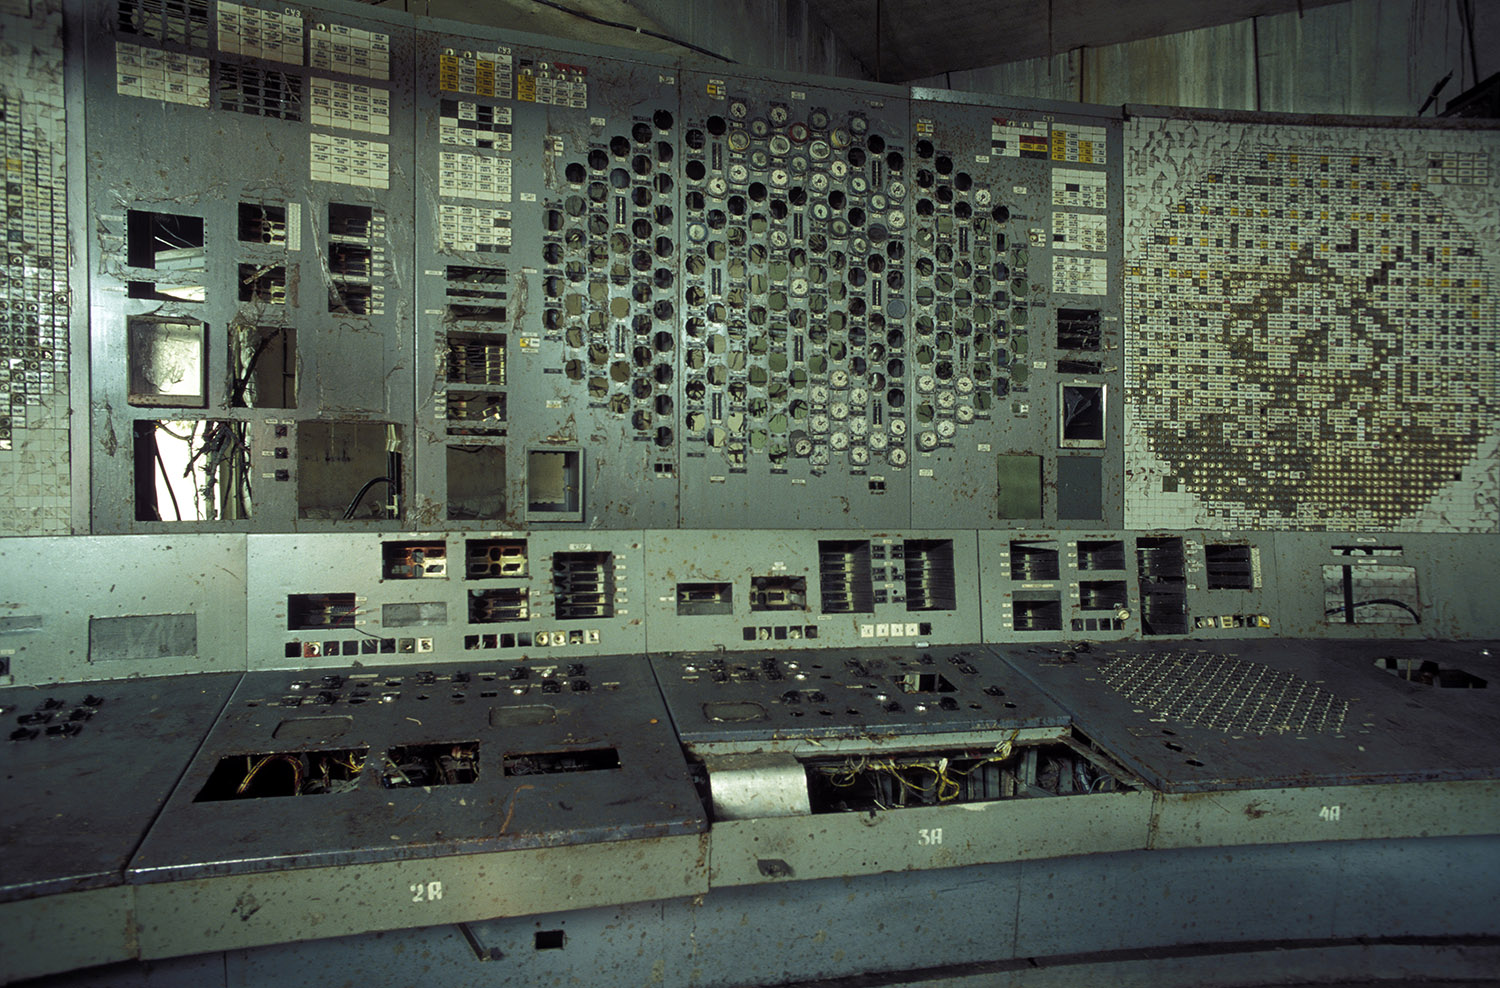 The control panel of reactor unit 4 inside the Chernobyl exclusion zone and nuclear power plant in 2006. Reactor unit 4 was the one that blew up on April 26, 1986. (Credit: Patrick Landmann/Getty Images)